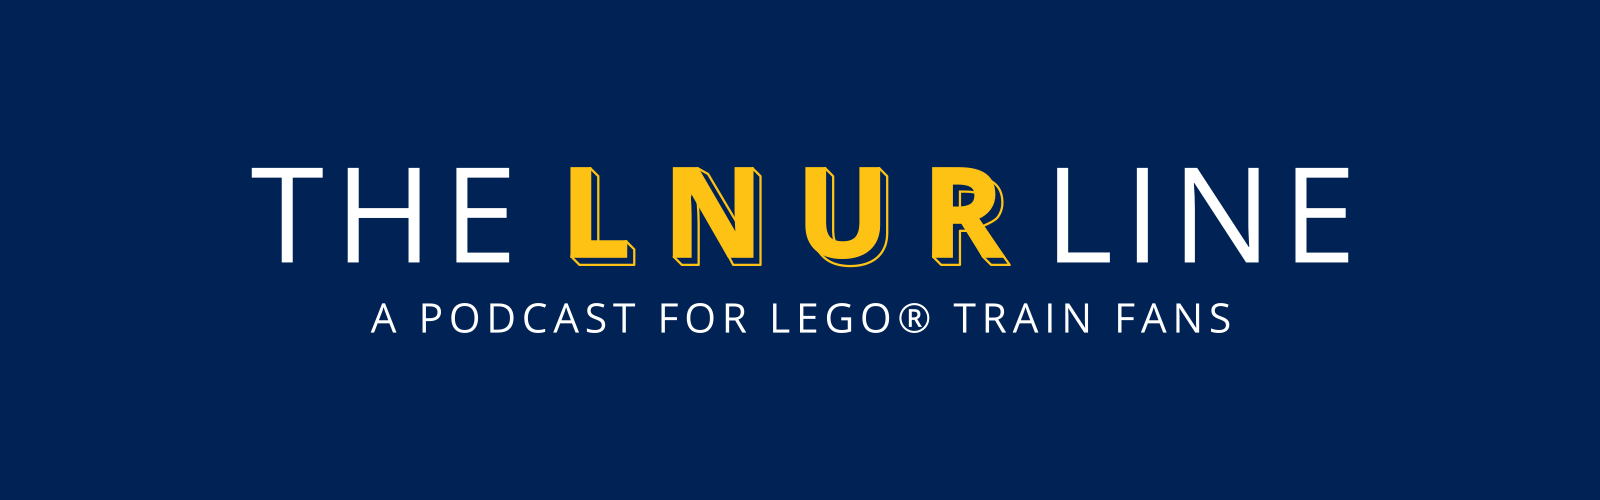 LNUR Line - LEGO train fan podcast